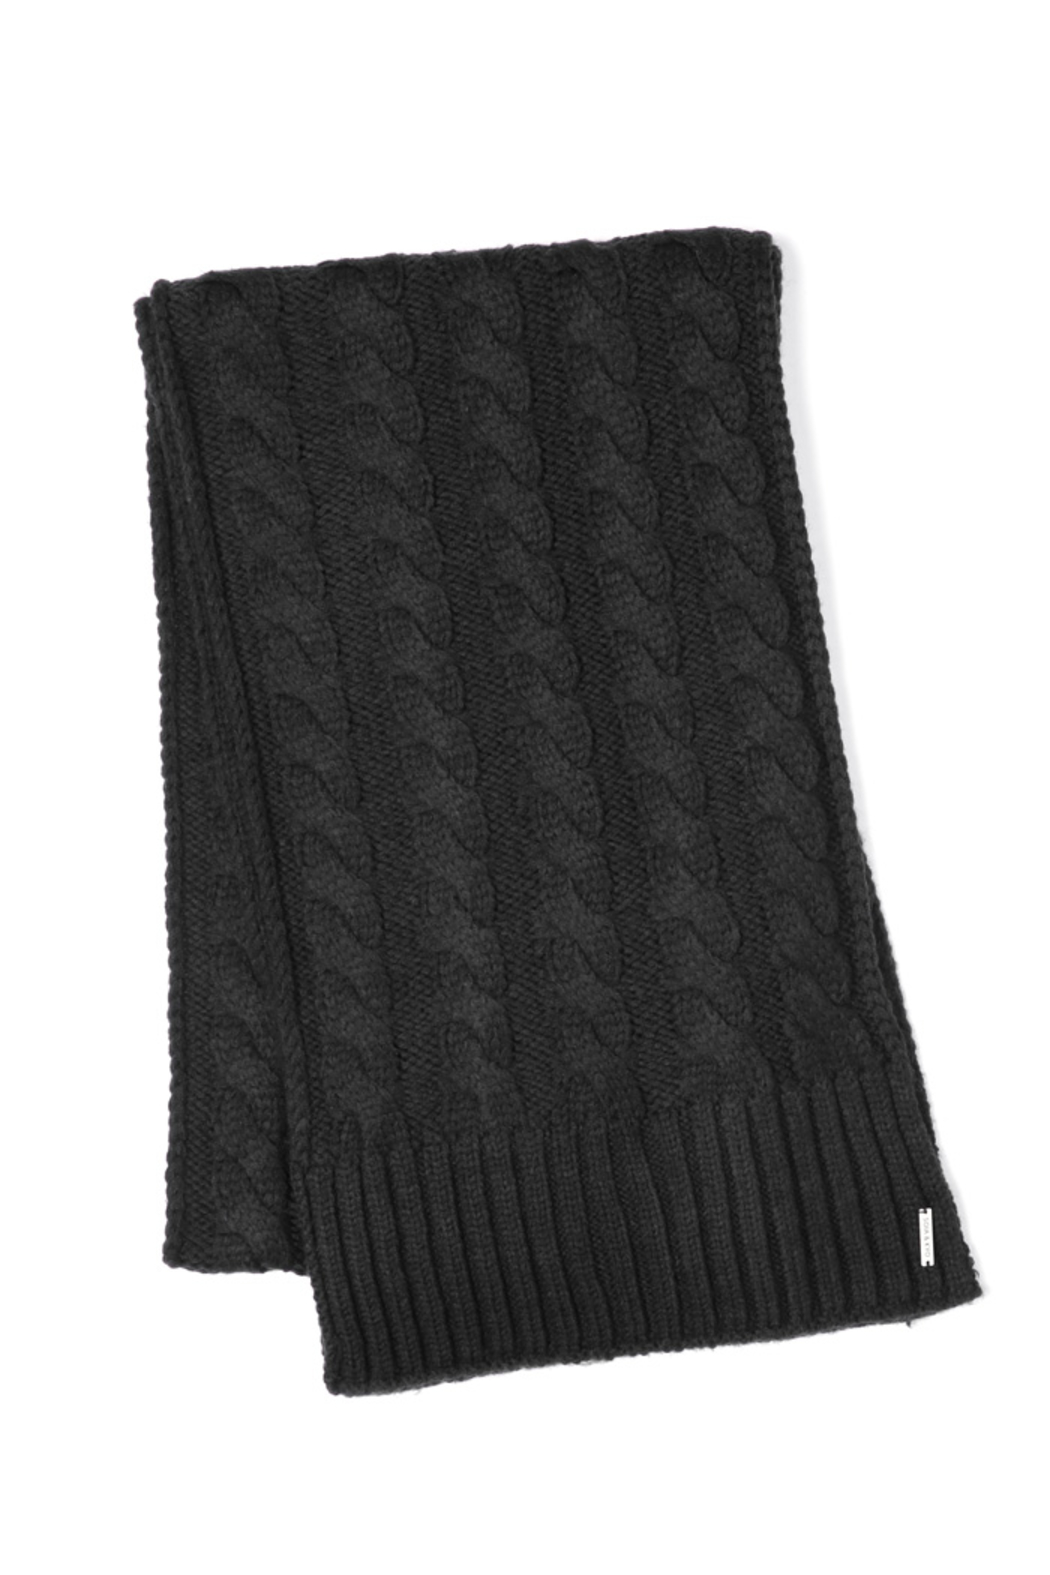 Soia & Kyo MIRI CABLE KNIT SCARF - Front Full Image